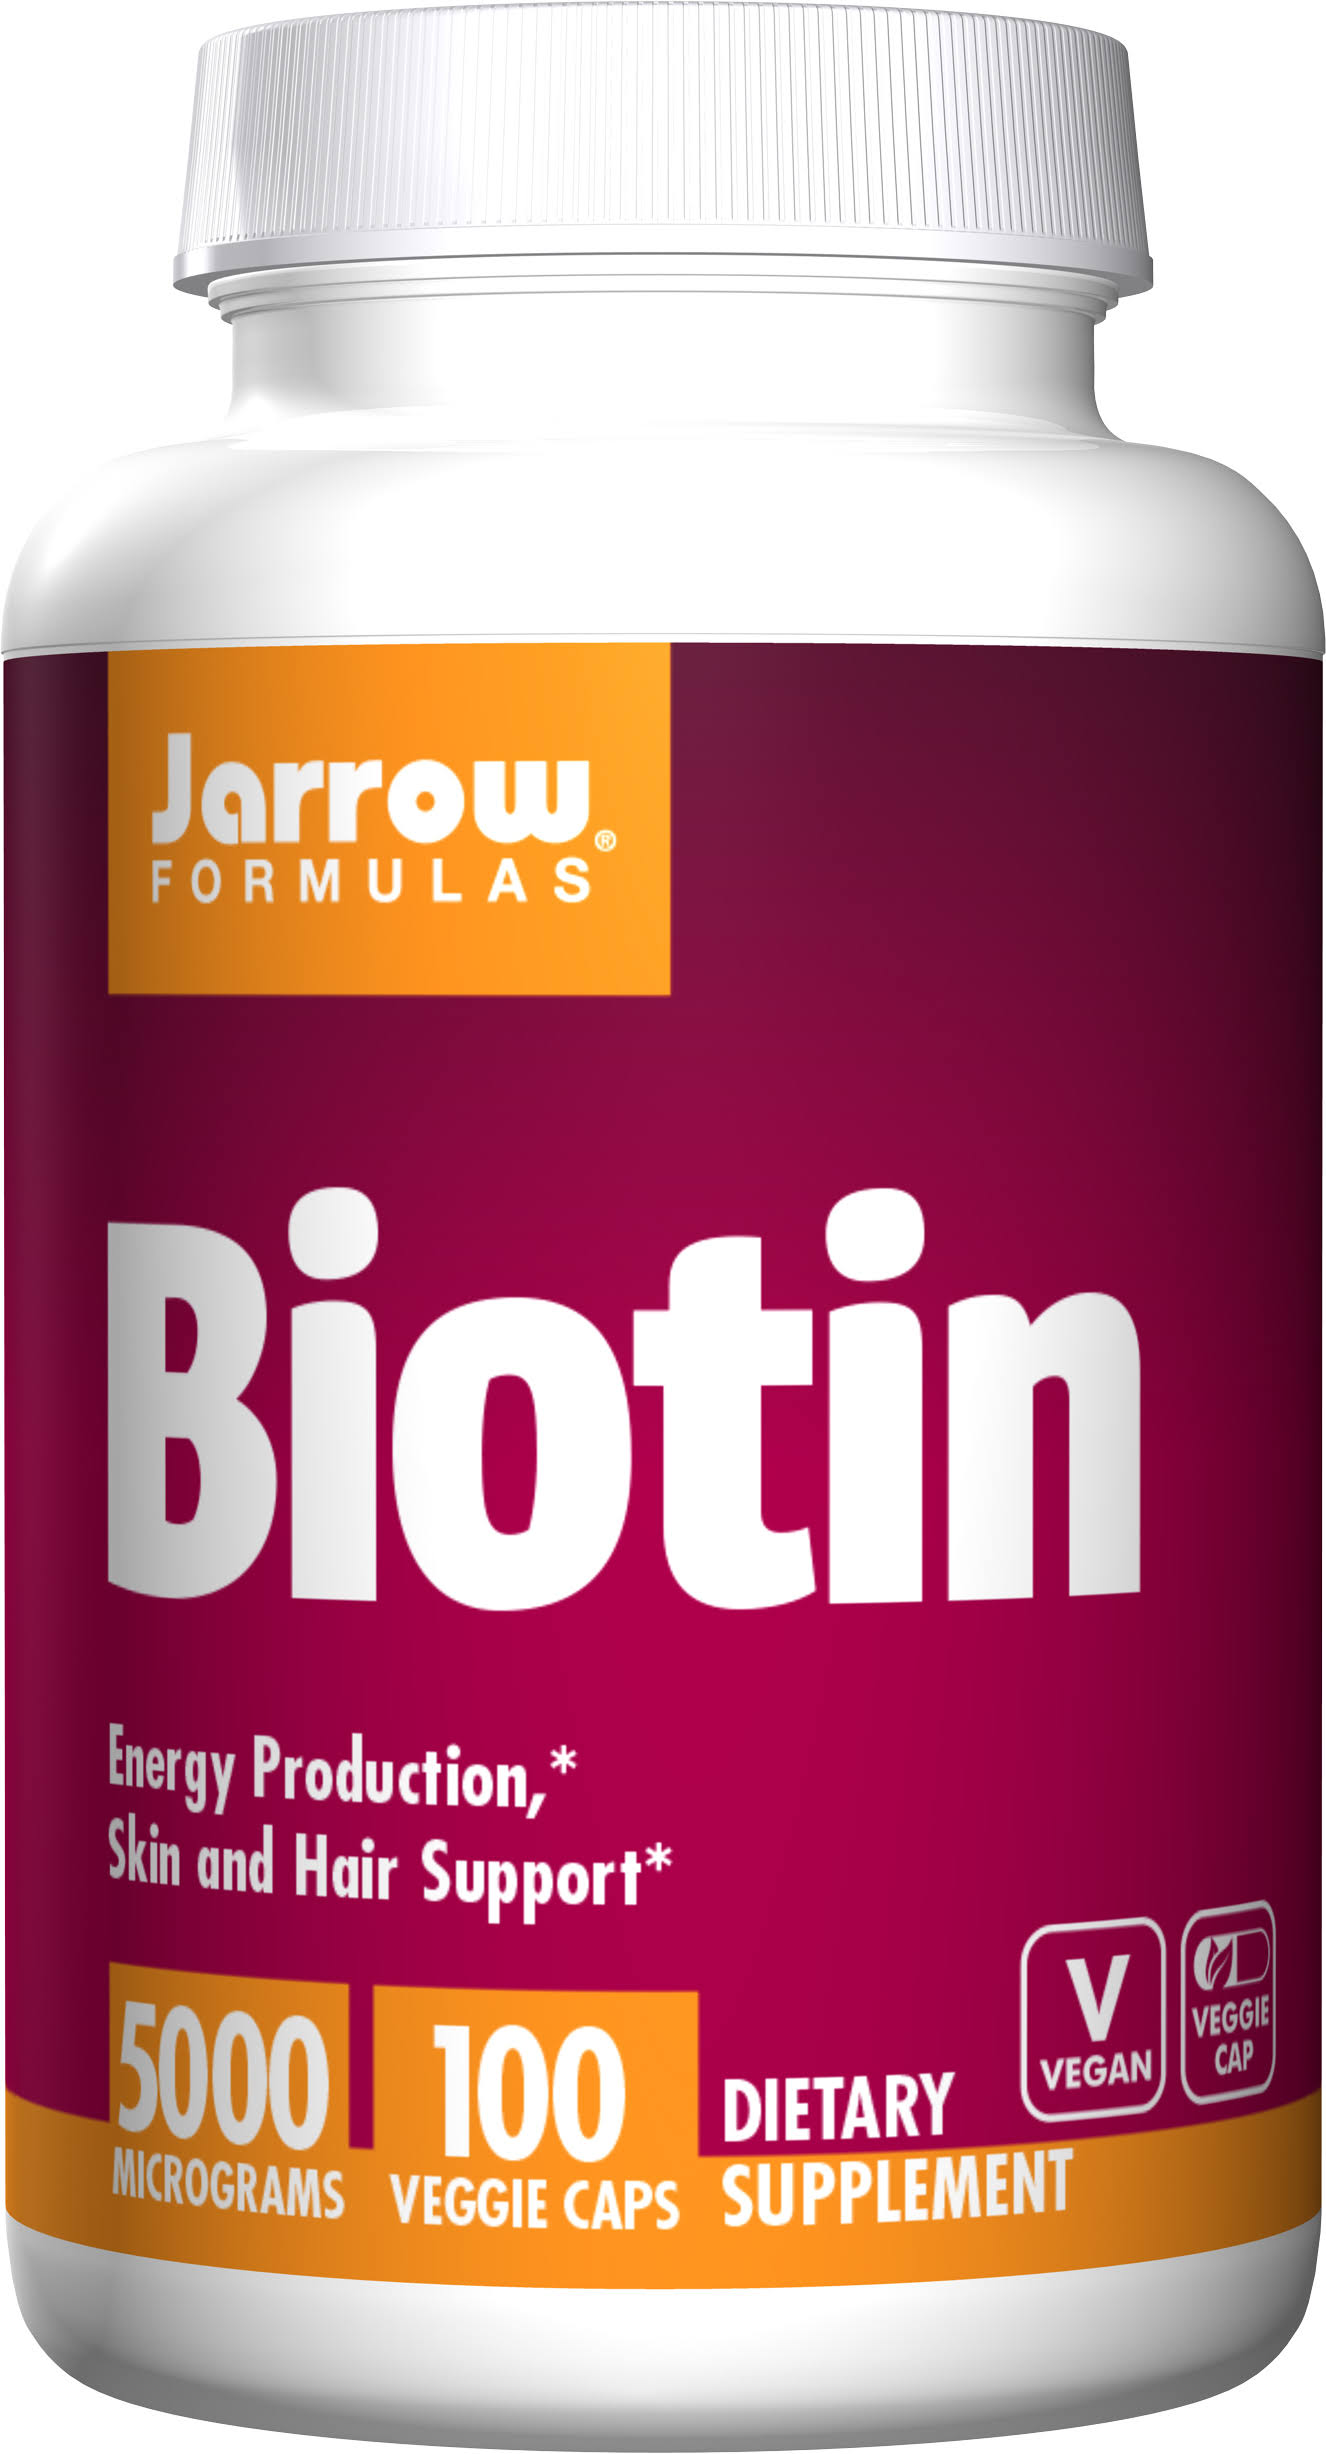 Jarrow Formulas Biotin Supplement - 100 Capsules